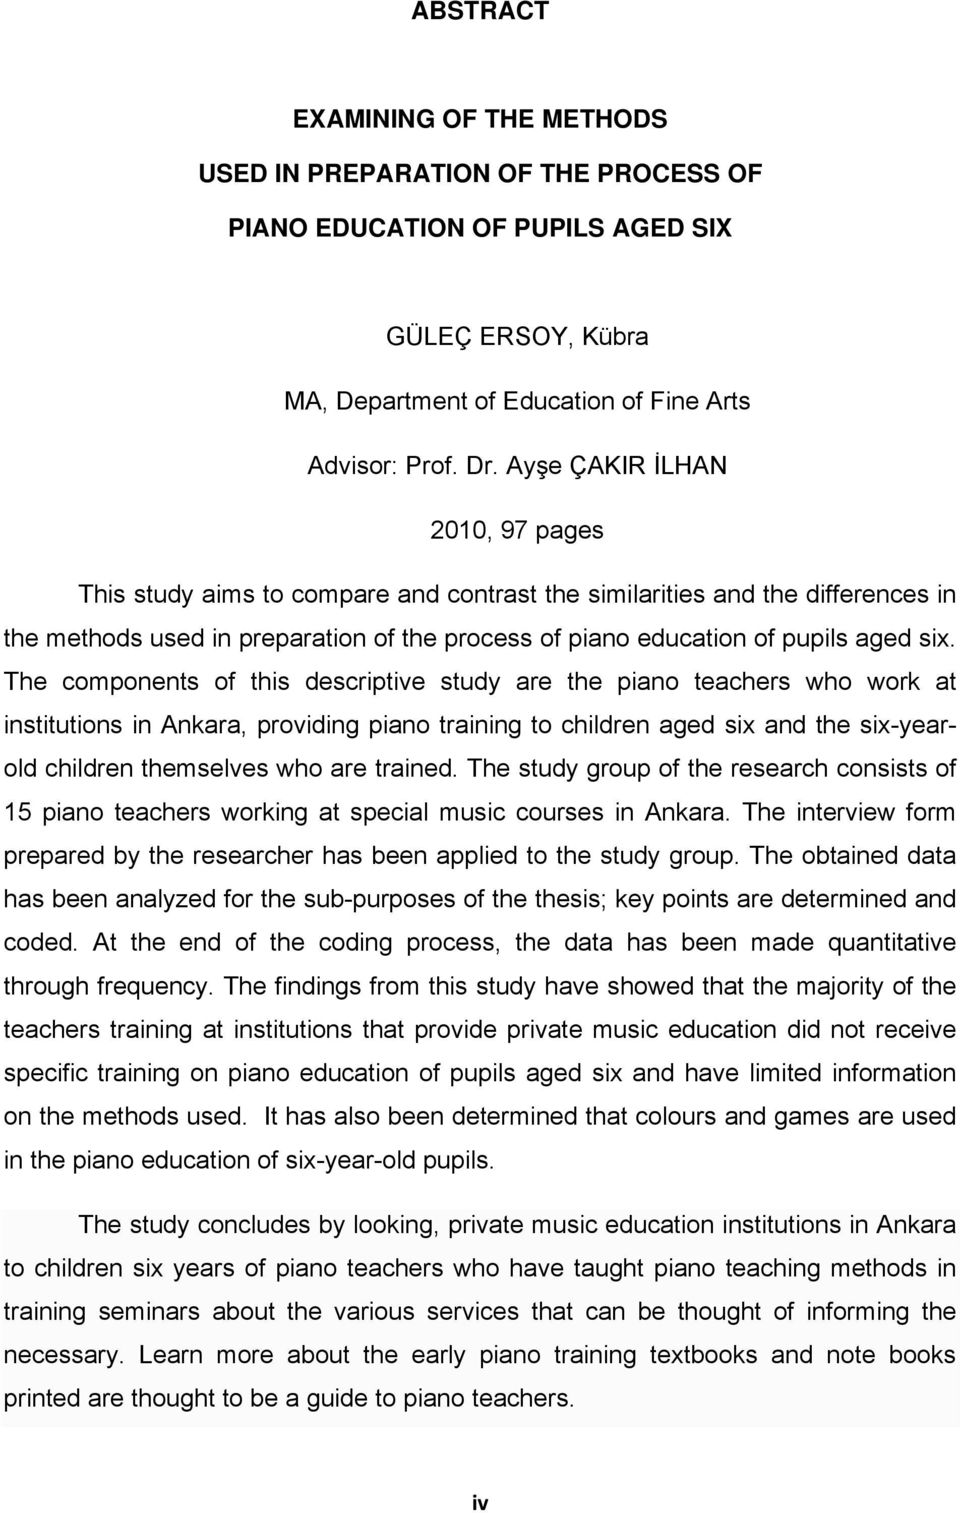 The components of this descriptive study are the piano teachers who work at institutions in Ankara, providing piano training to children aged six and the six-yearold children themselves who are